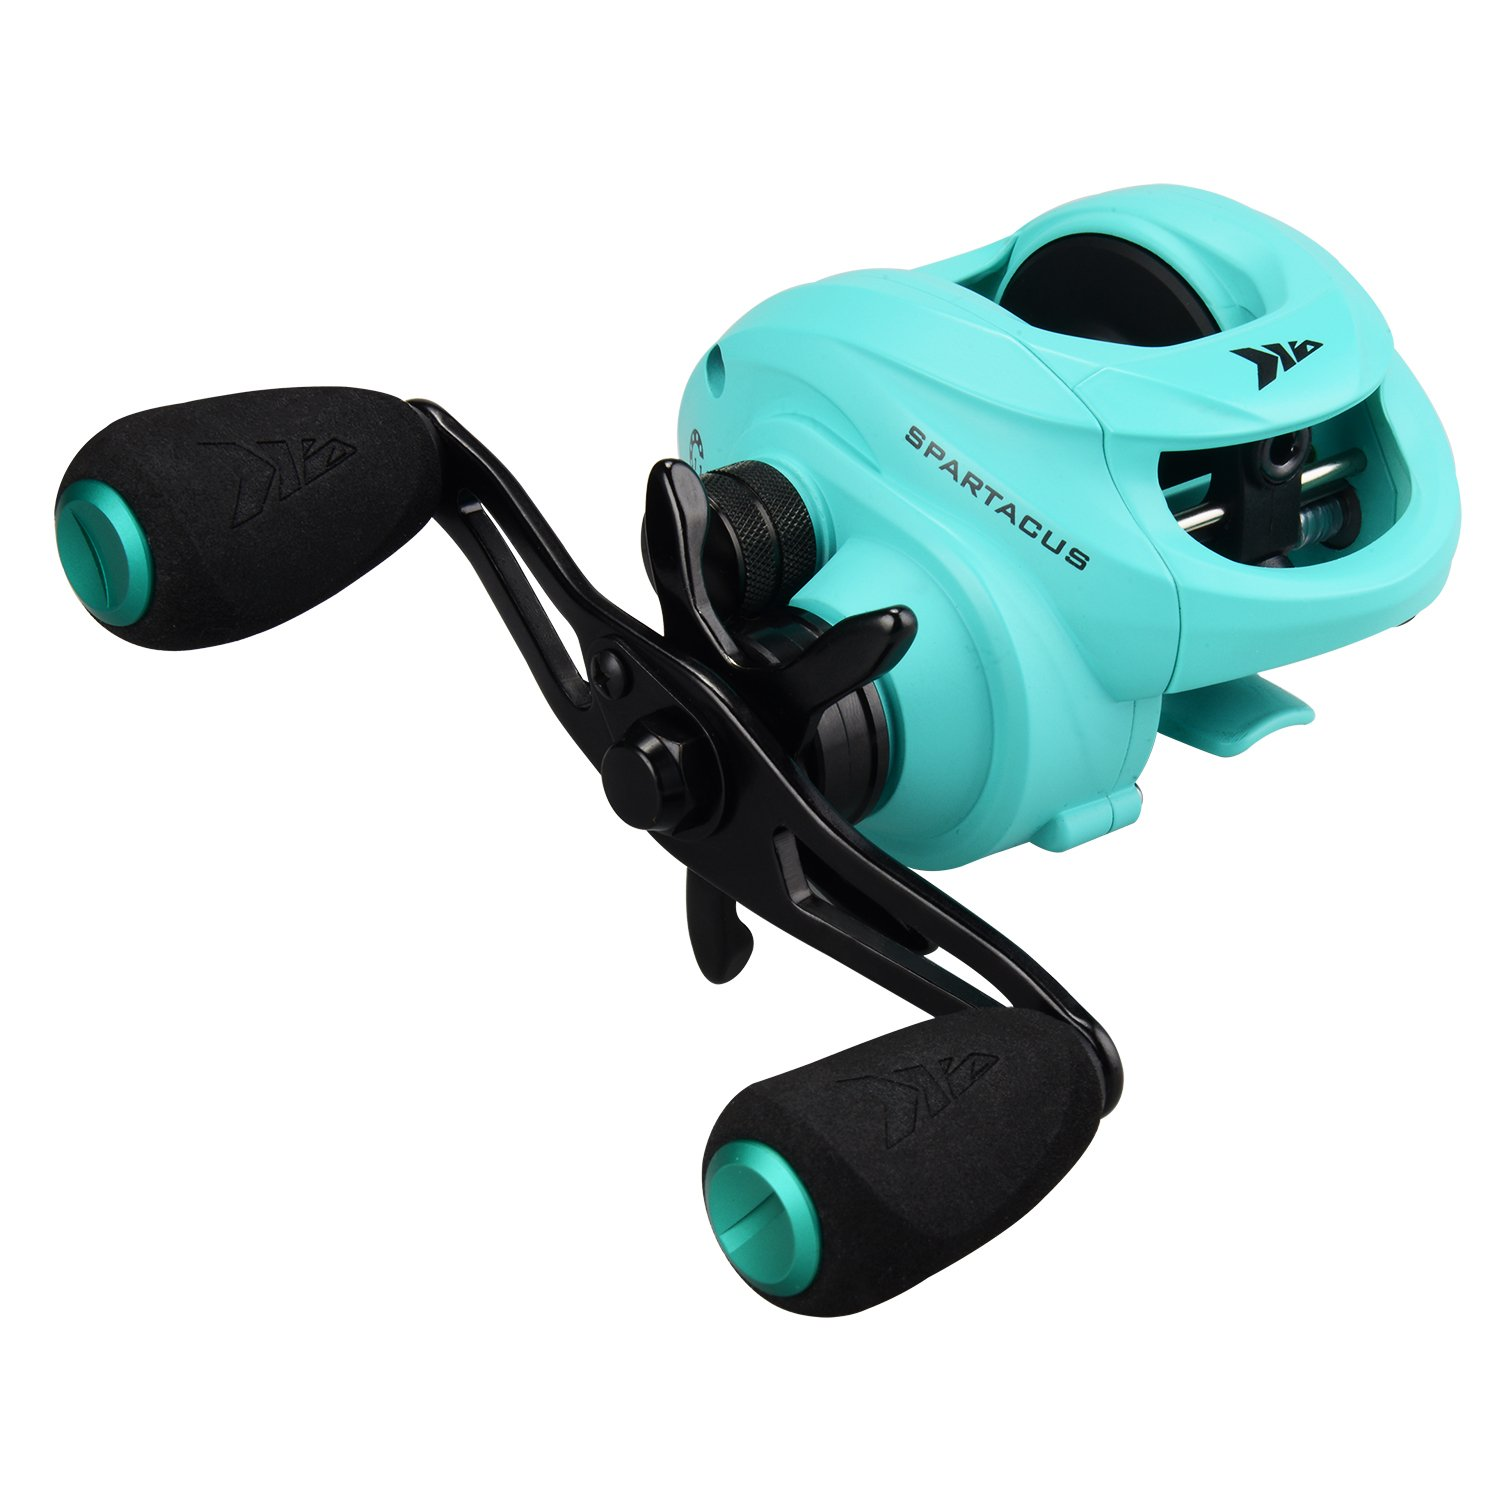 KastKing Spartacus Baitcasting Fishing Reel Ultra Smooth 17.5 LB Carbon Fiber Drag, 6.3:1 Gear Ratio,11 + 1 Shielded Ball Bearings, Rubber Cork Handle Knobs (C:Seafoam Green: Right Handed Reel)